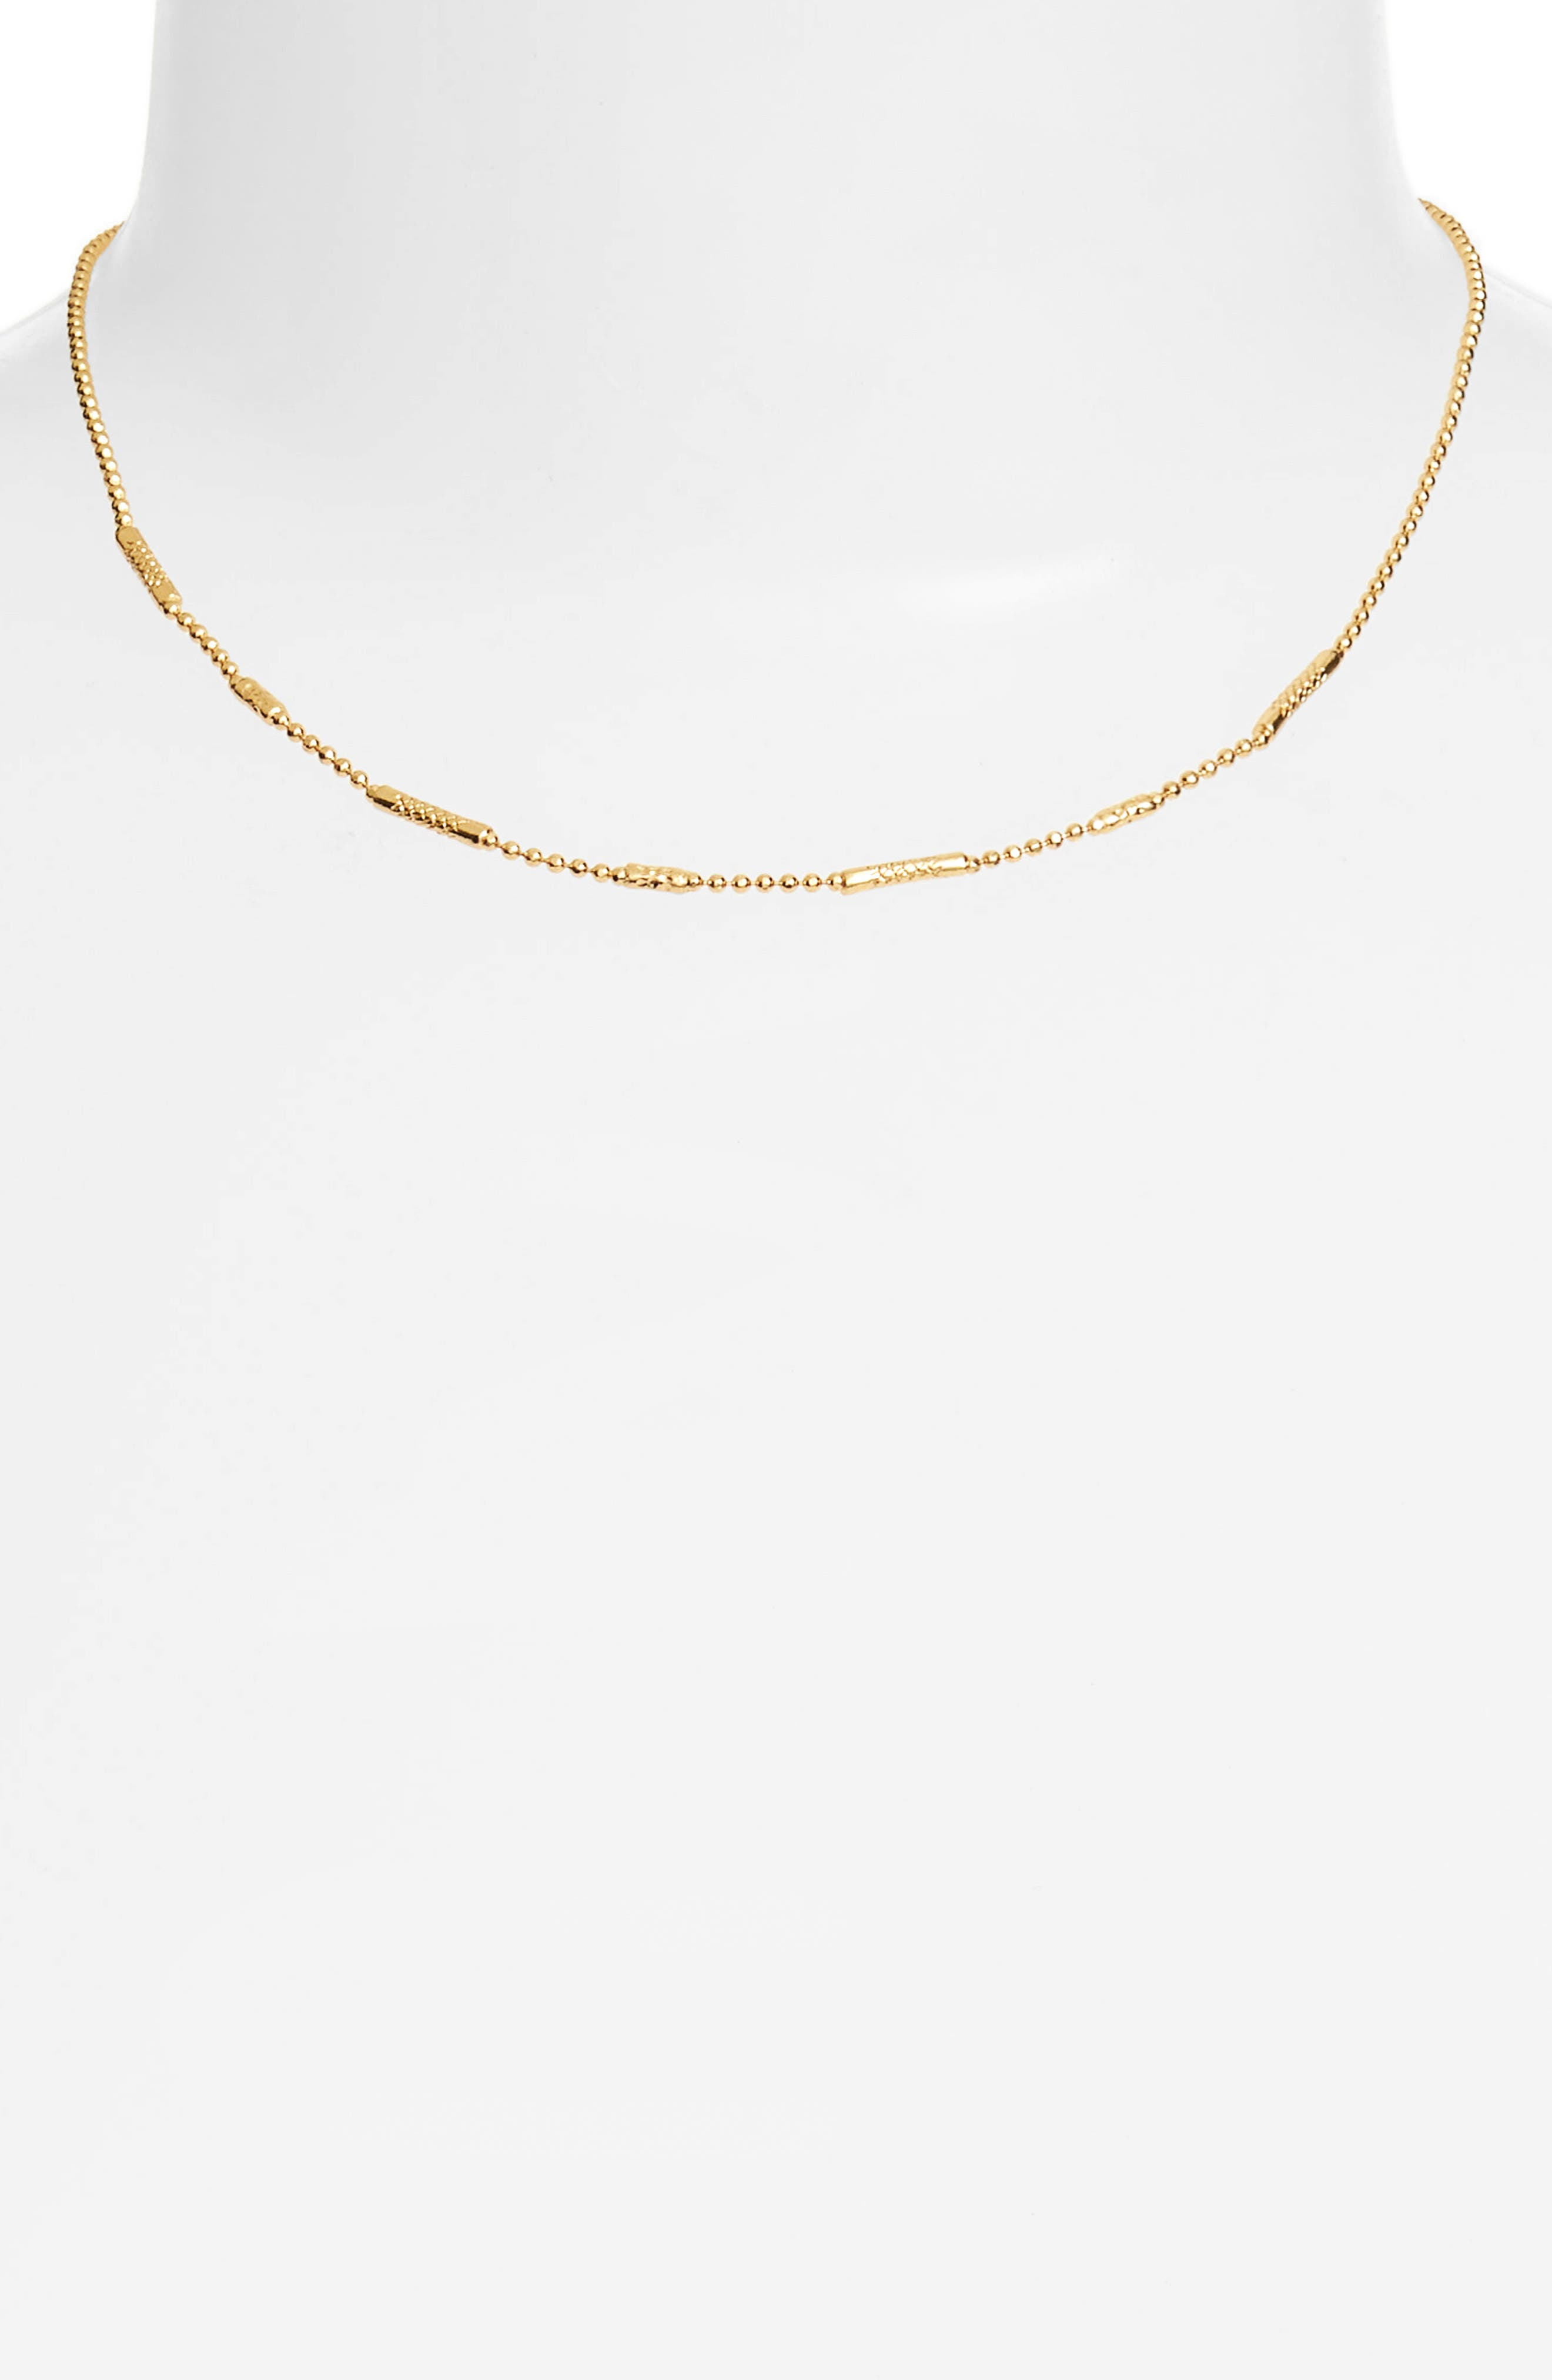 Ready to Mingle Necklace,                             Alternate thumbnail 2, color,                             GOLD